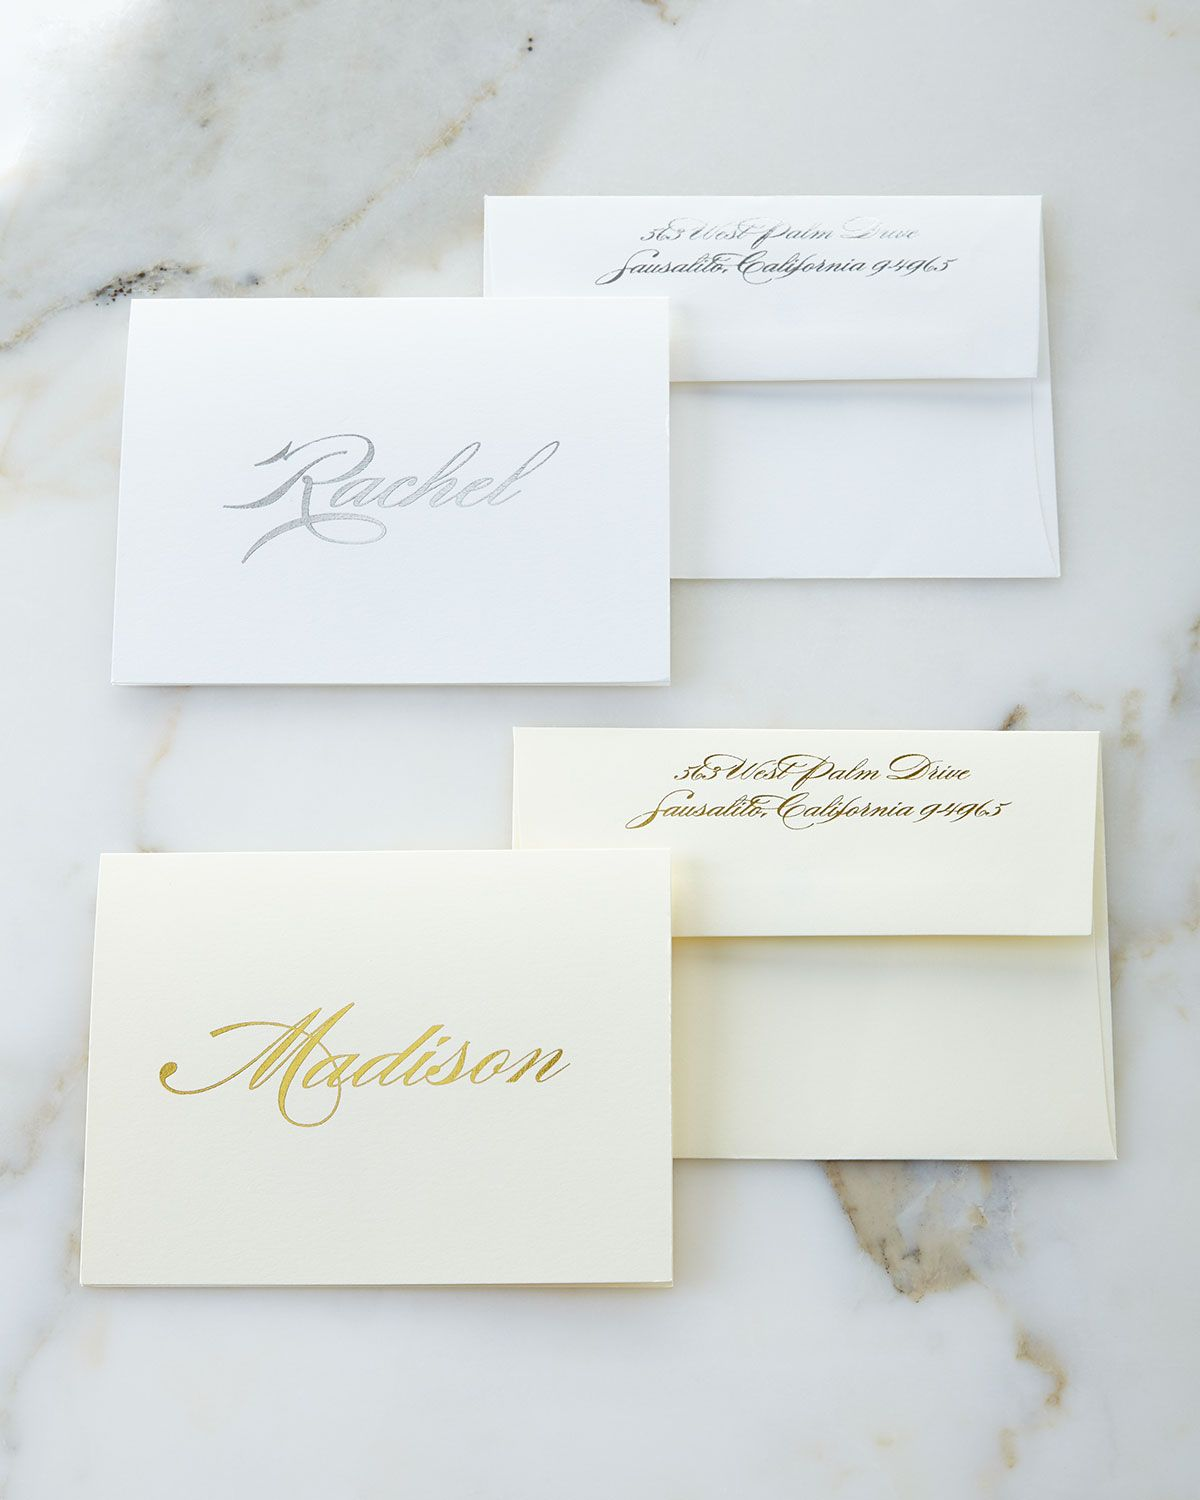 Foil embossed foldover notes with personalized envelopes